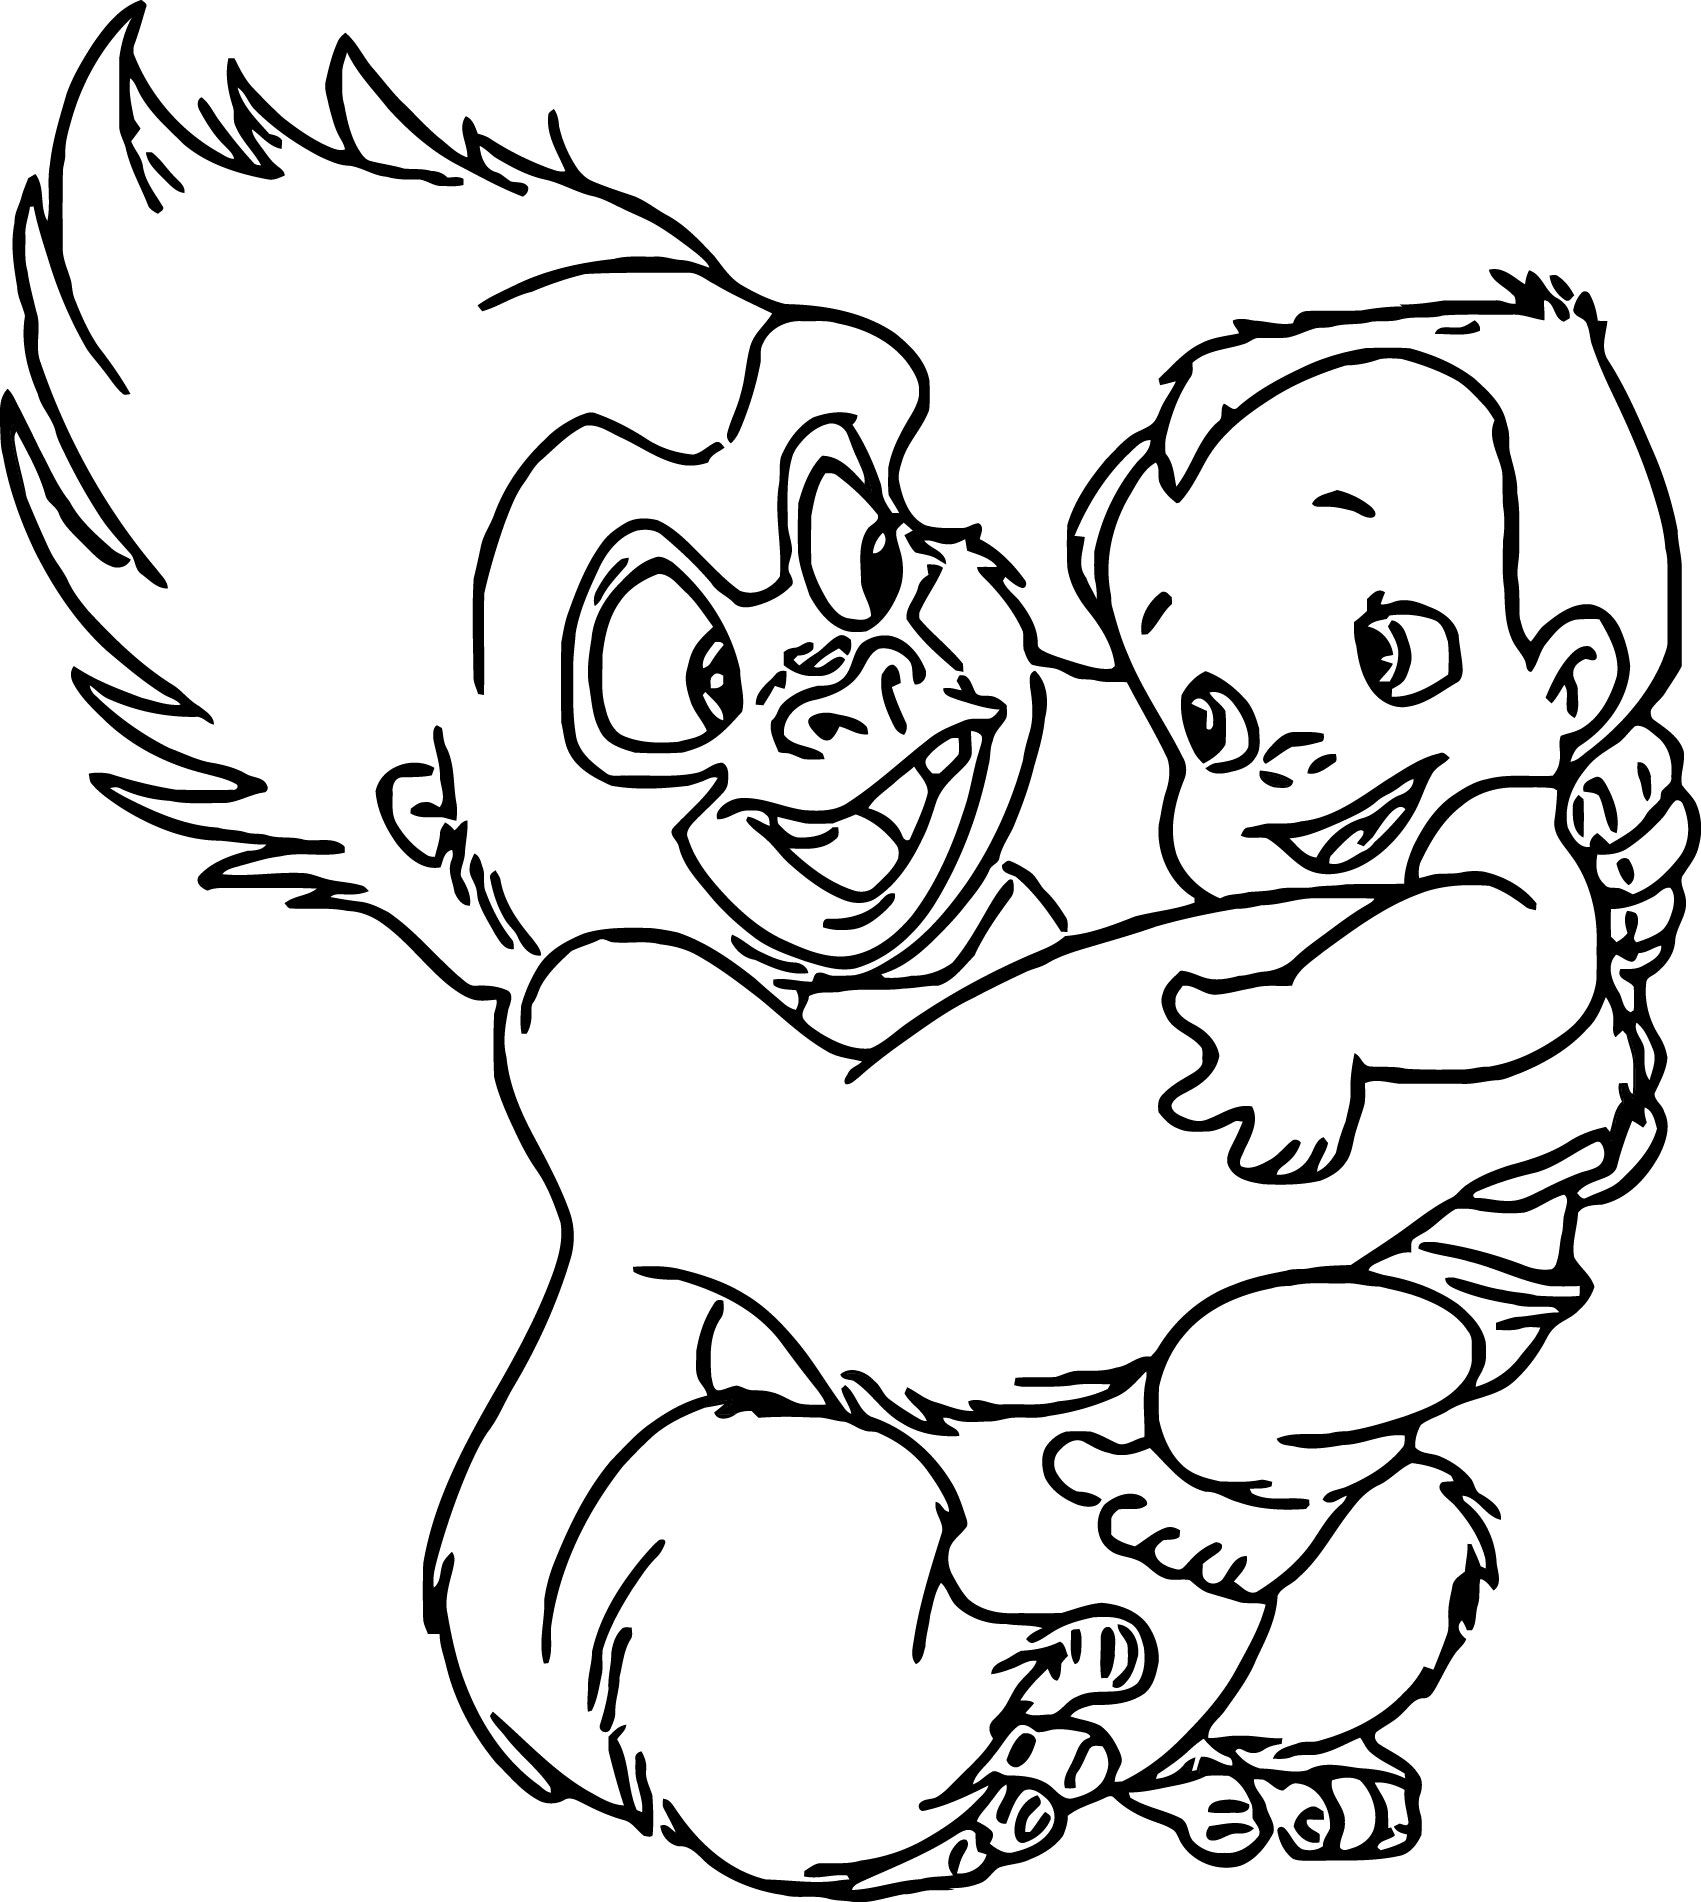 Disney Baby Tarzan Coloring Pages C Pages Disney Pinterest